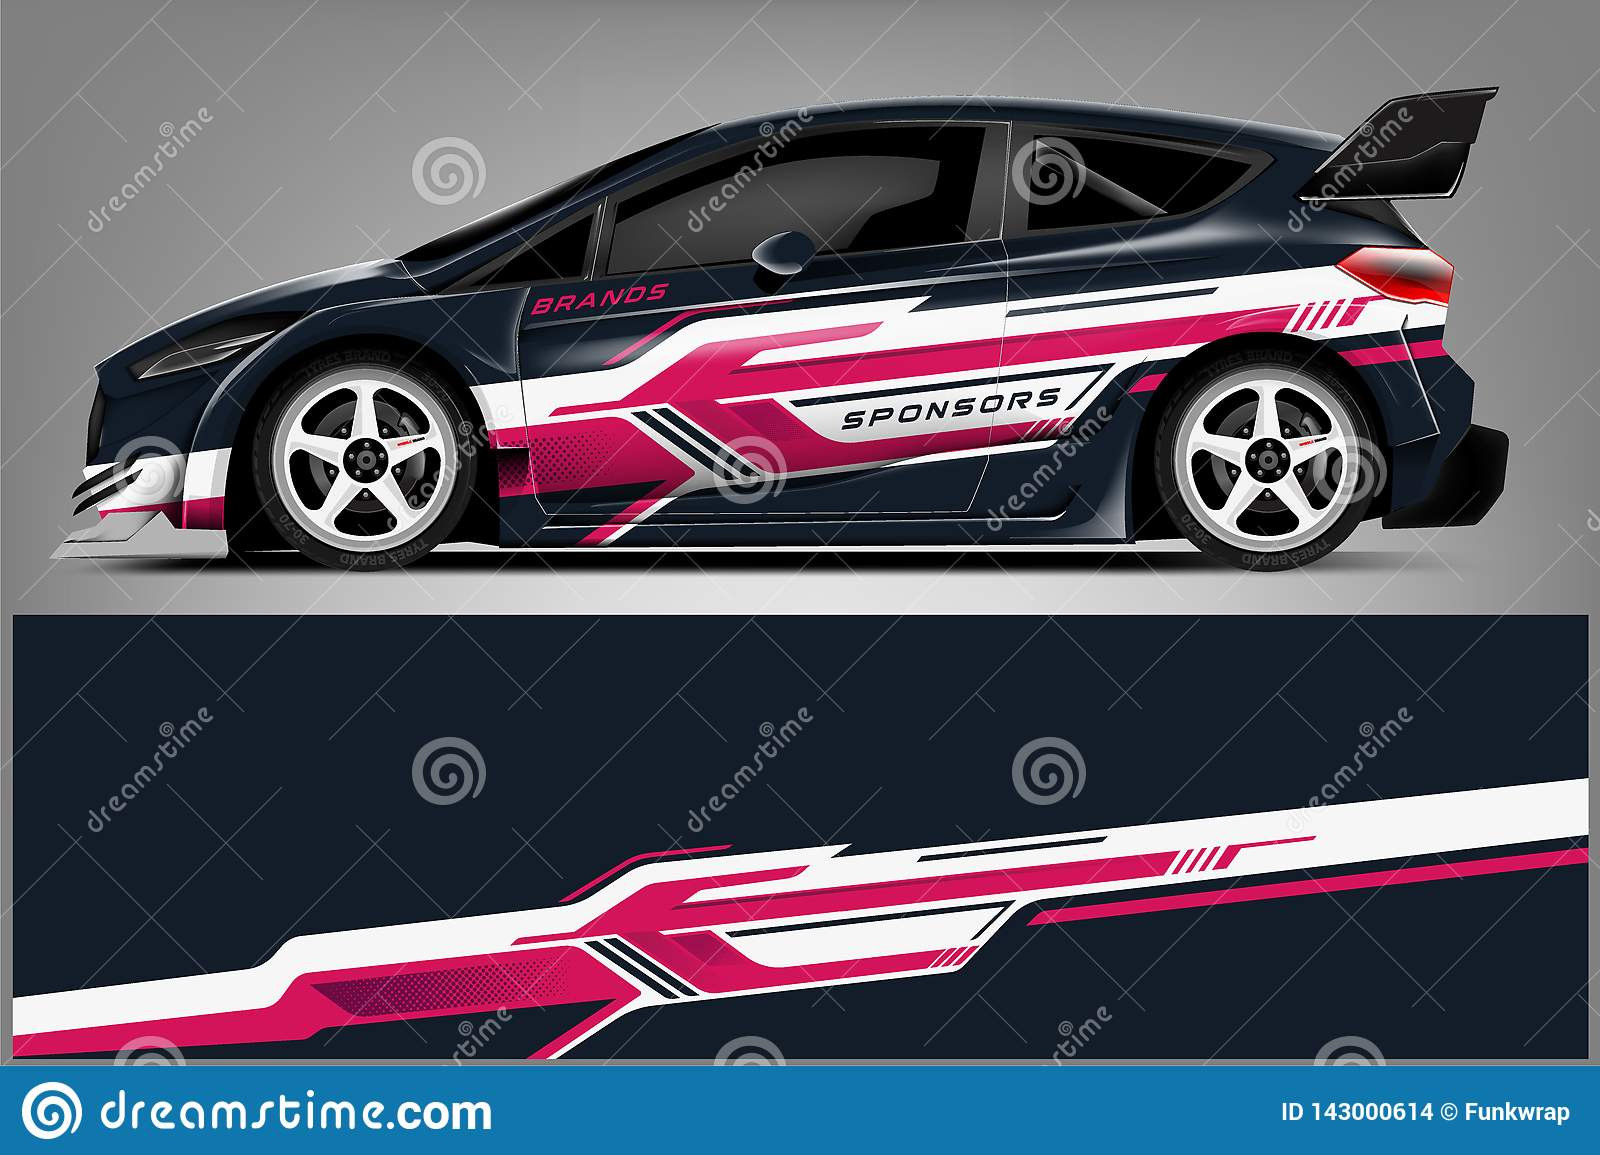 Car Decal Wrap Design Graphic Abstract Stripe Racing Background Kit Designs For Vehicle Race Car Rally Adventure And Li Stock Illustration Illustration Of Concept Rally 143000614